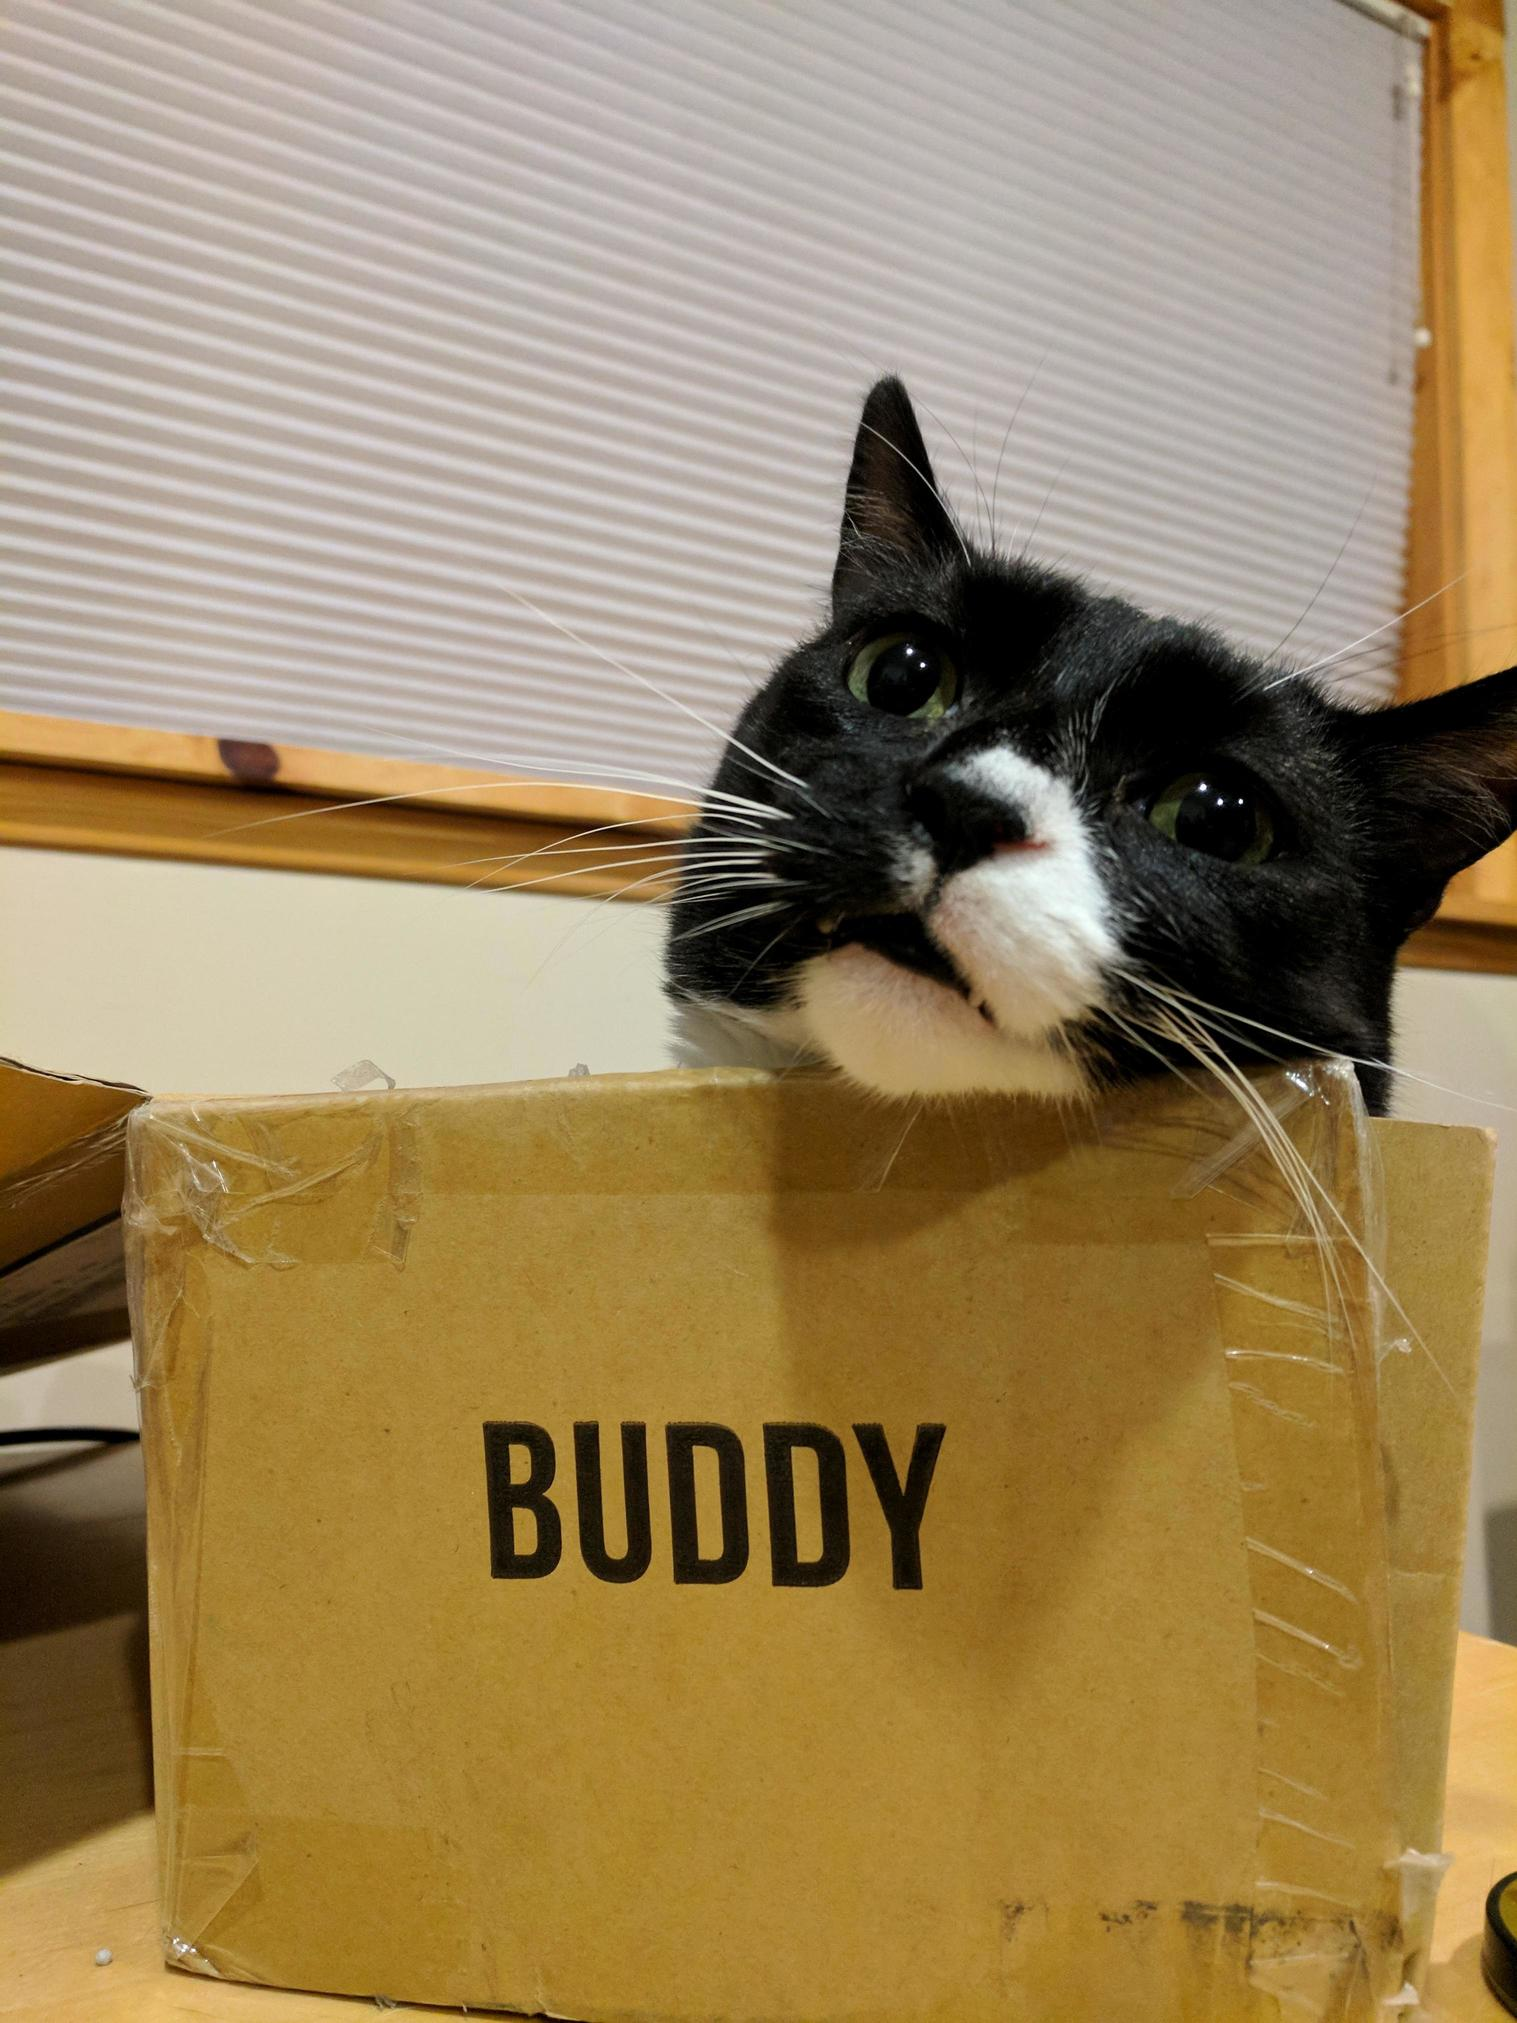 Box buddy